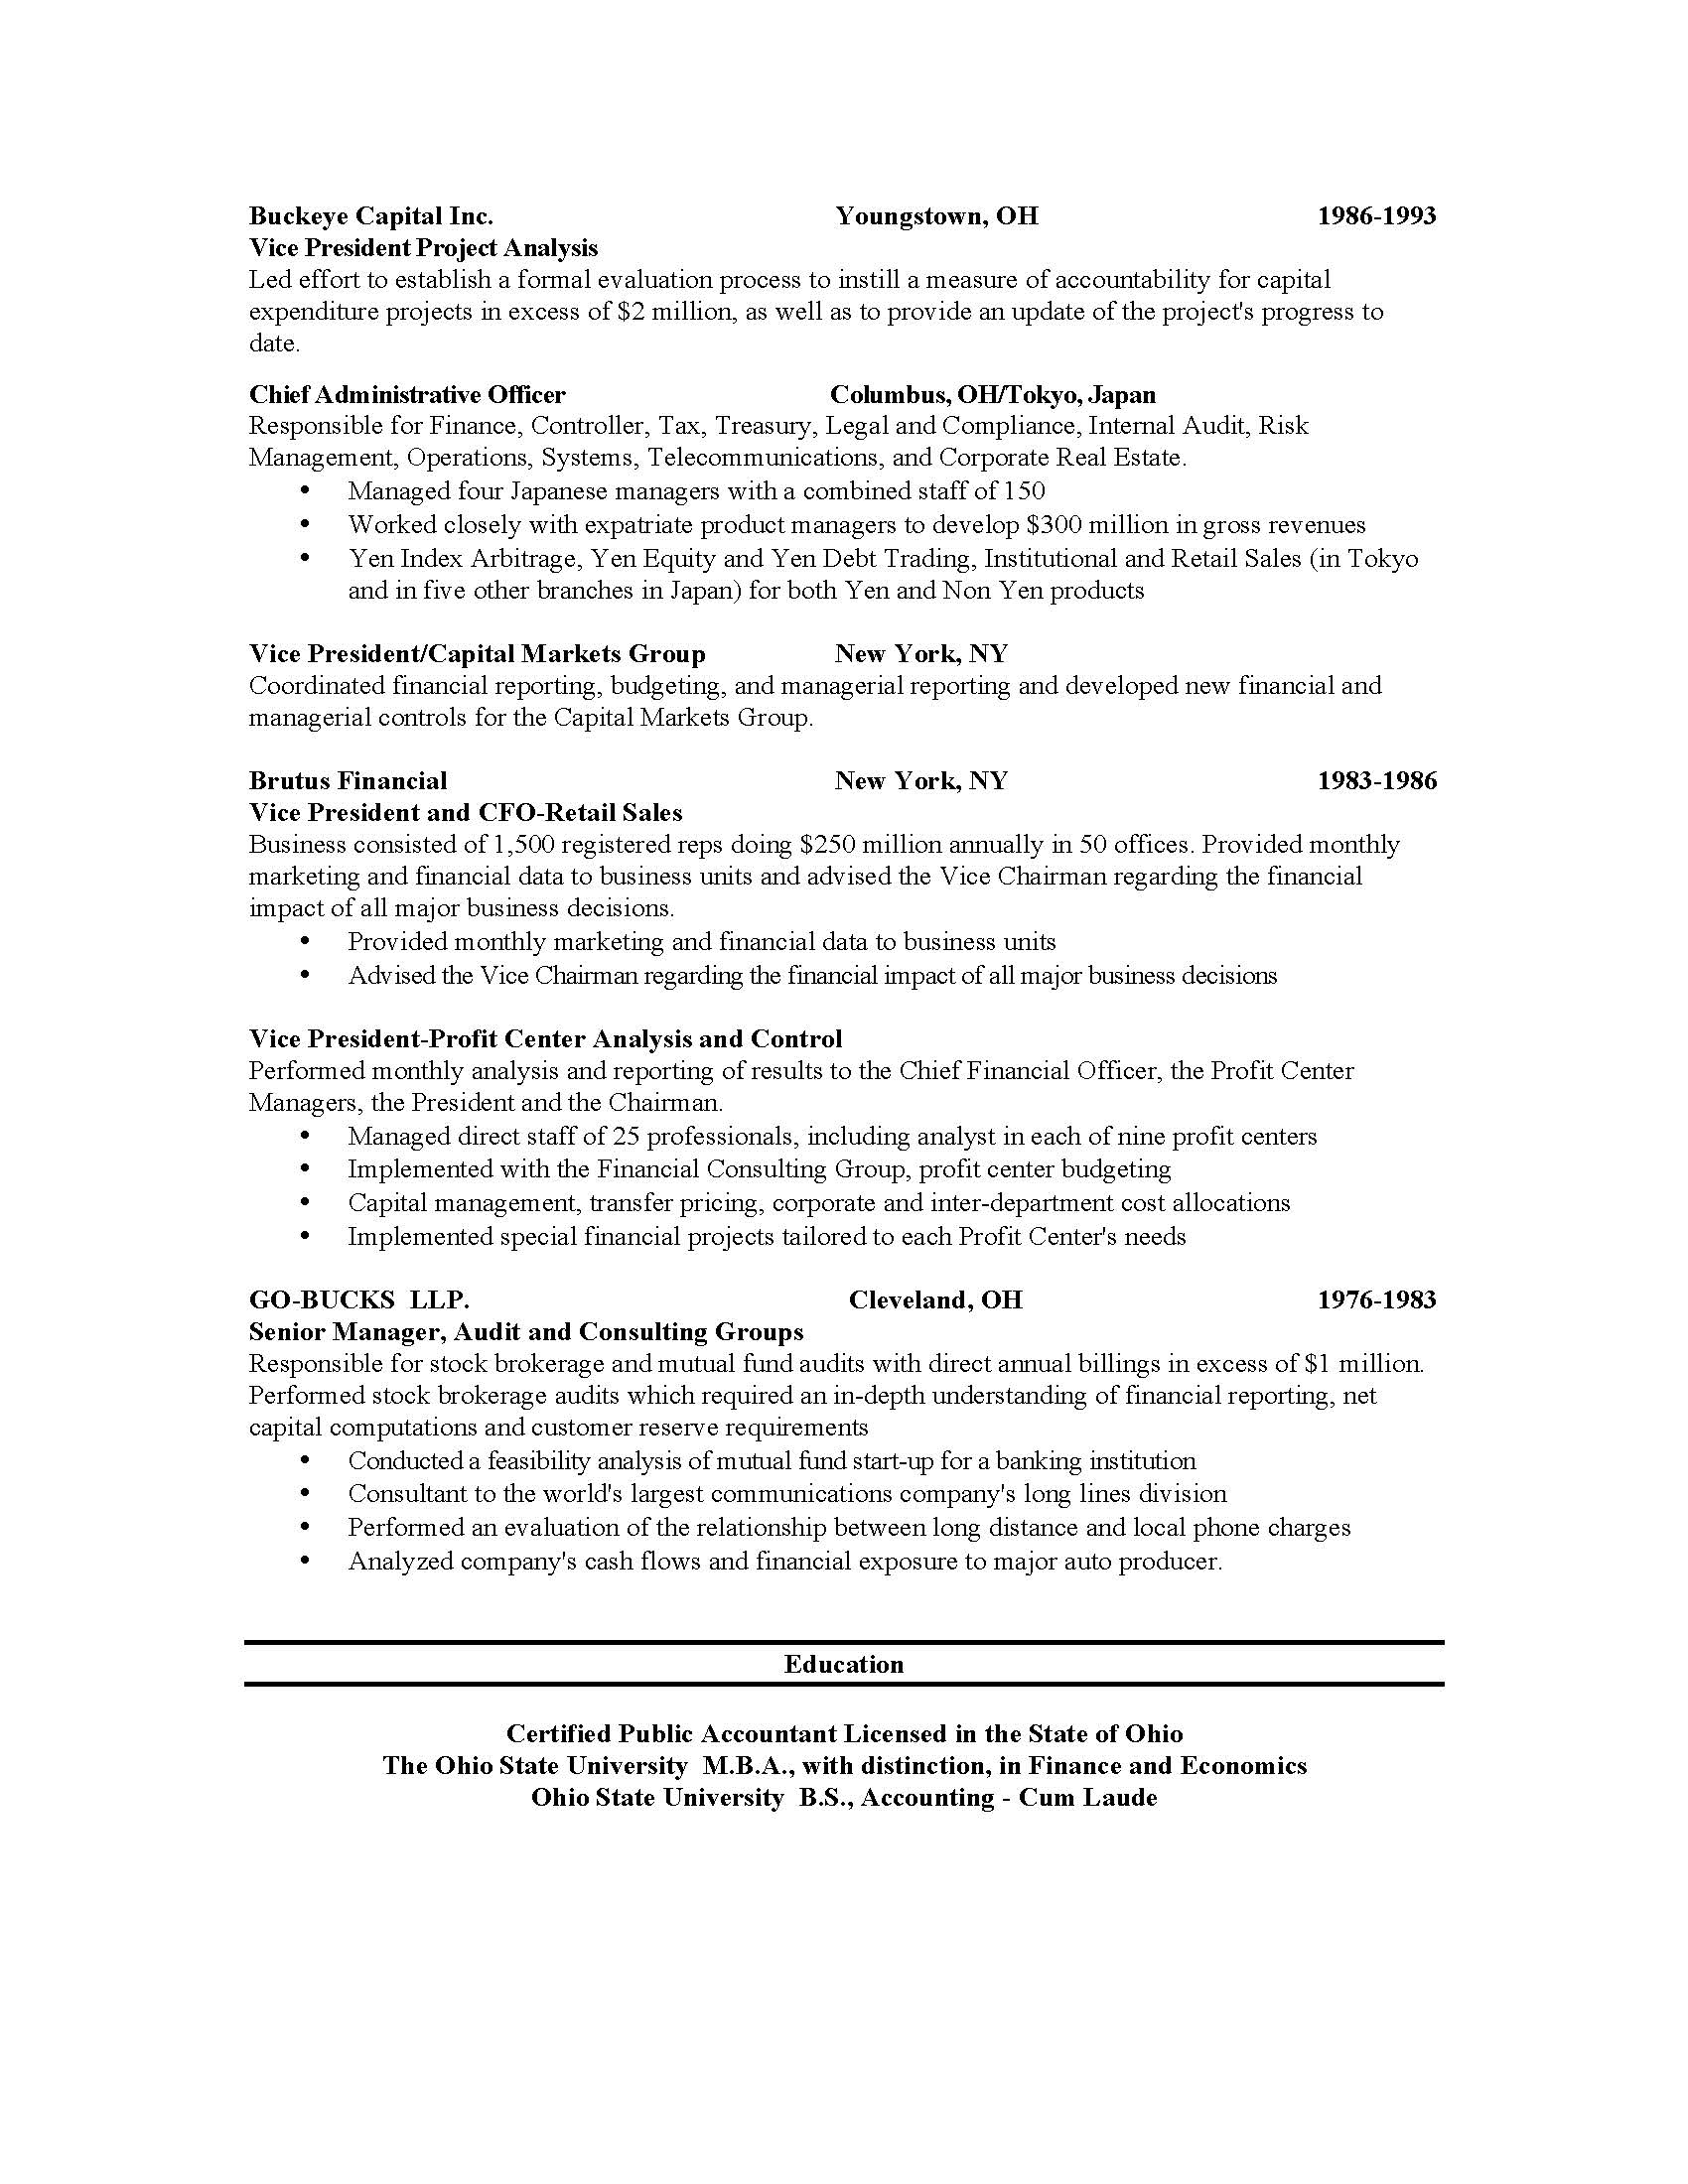 chronological resume chronological resume2 - How To Make Cover Letter Resume